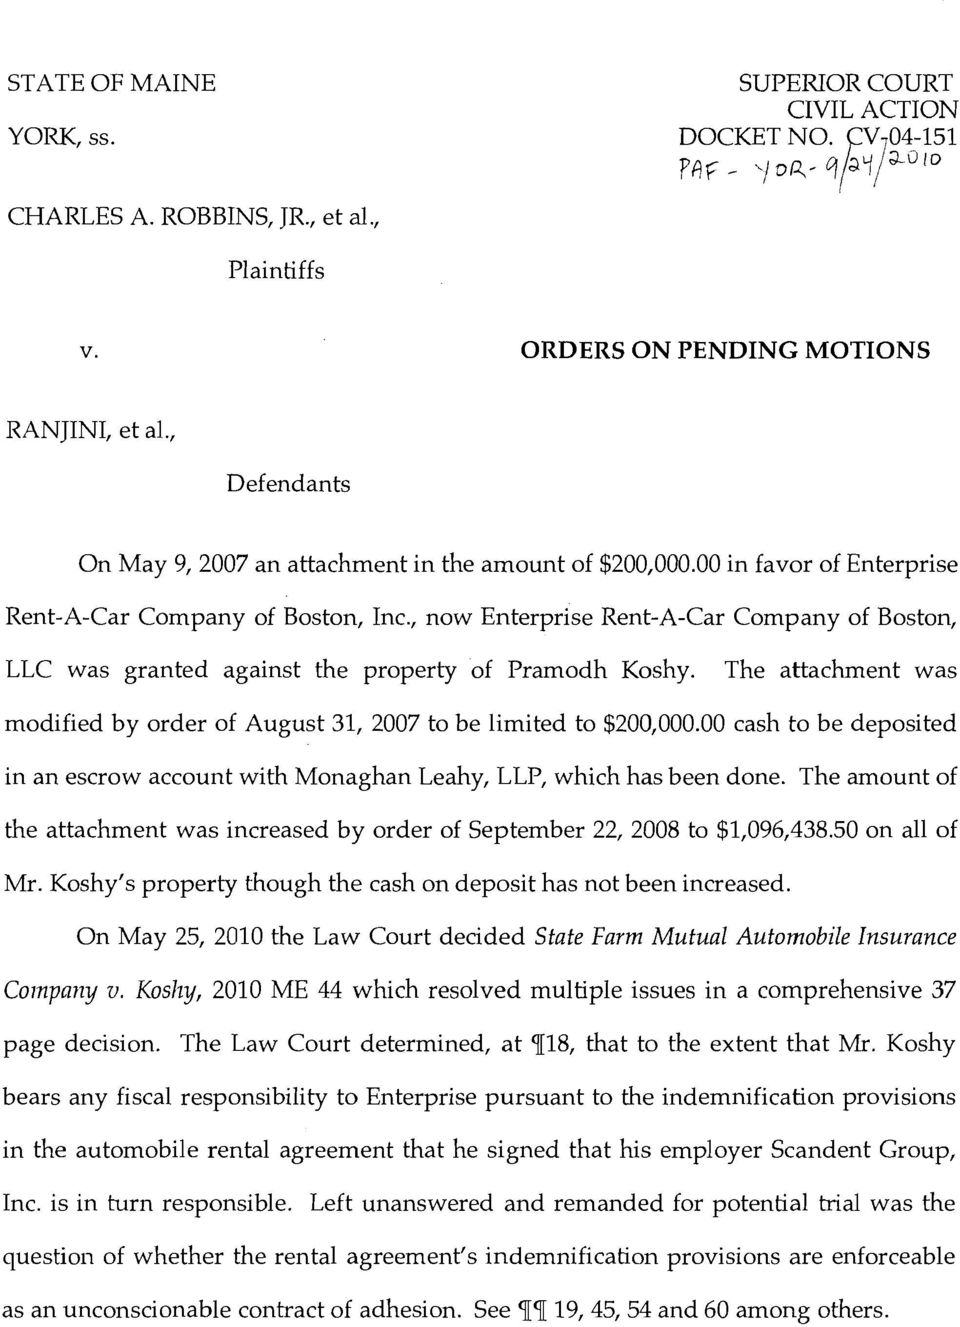 , now Enterprise Rent-A-Car Company of Boston, LLC was granted against the property of Pramodh Koshy. The attachment was modified by order of August 31, 2007 to be limited to $200,000.